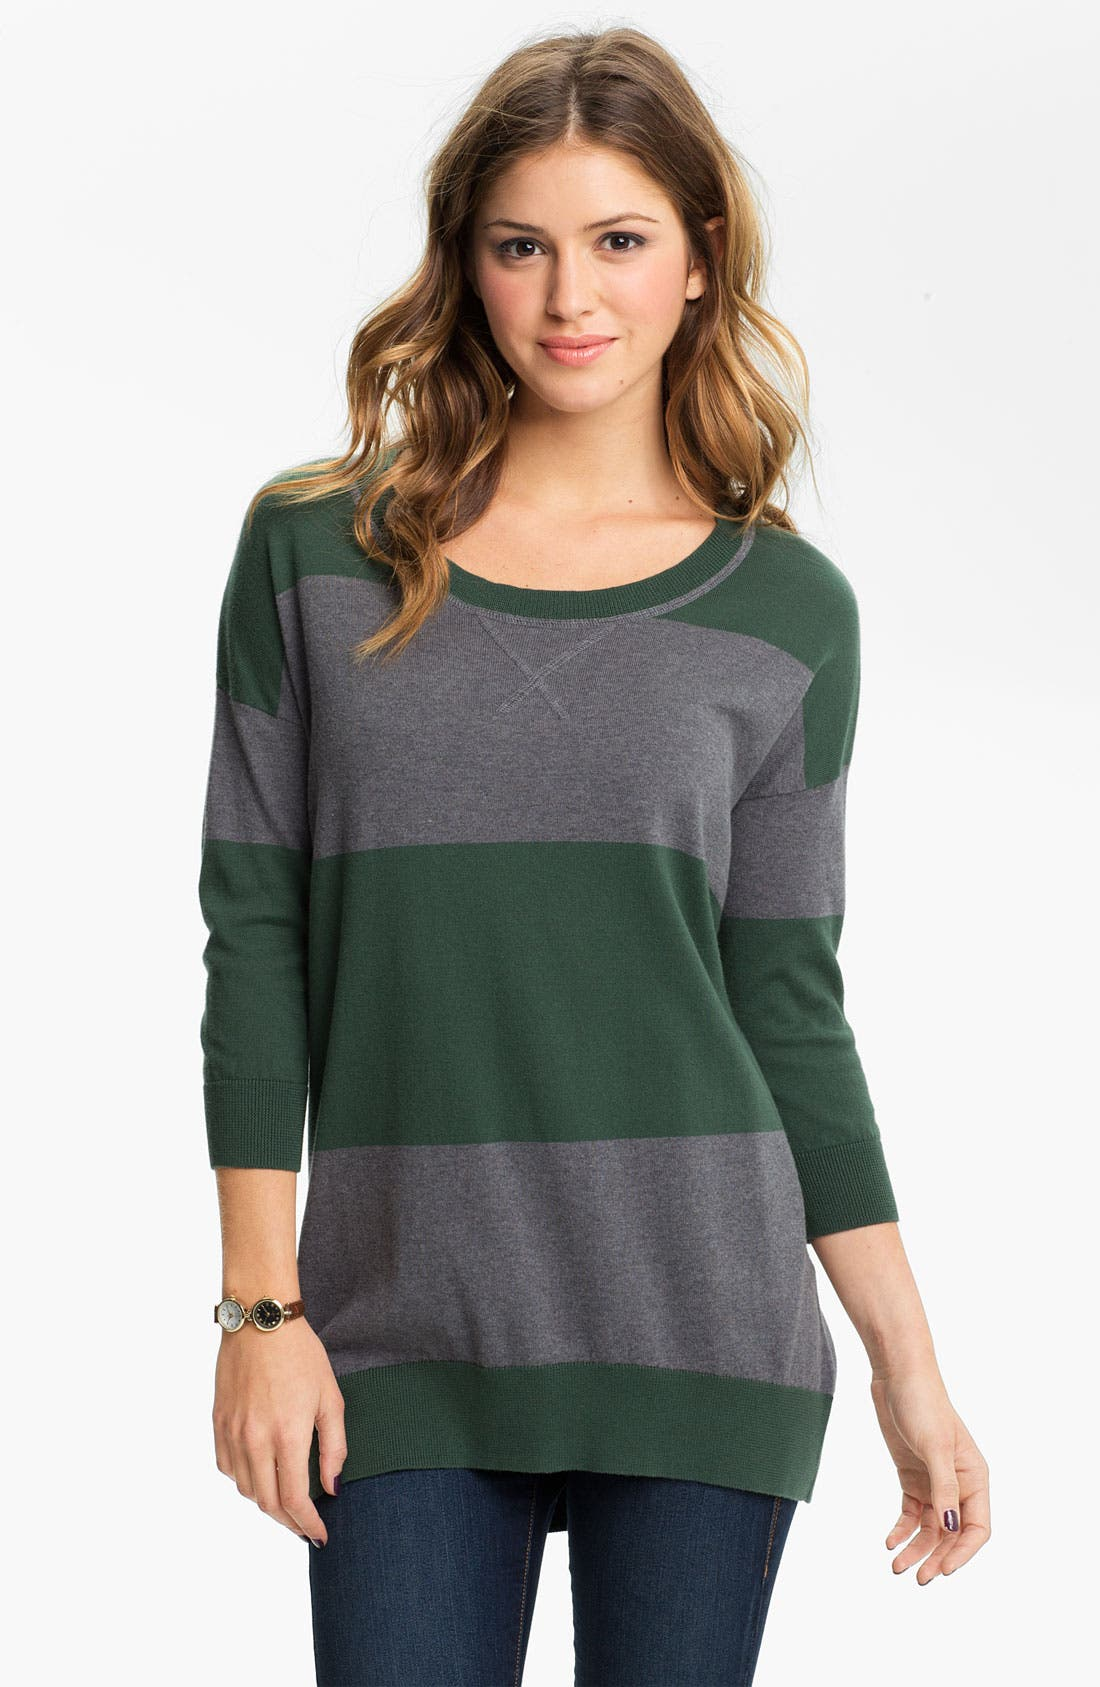 Alternate Image 1 Selected - BP. Rugby Stripe Tunic Sweater (Juniors)